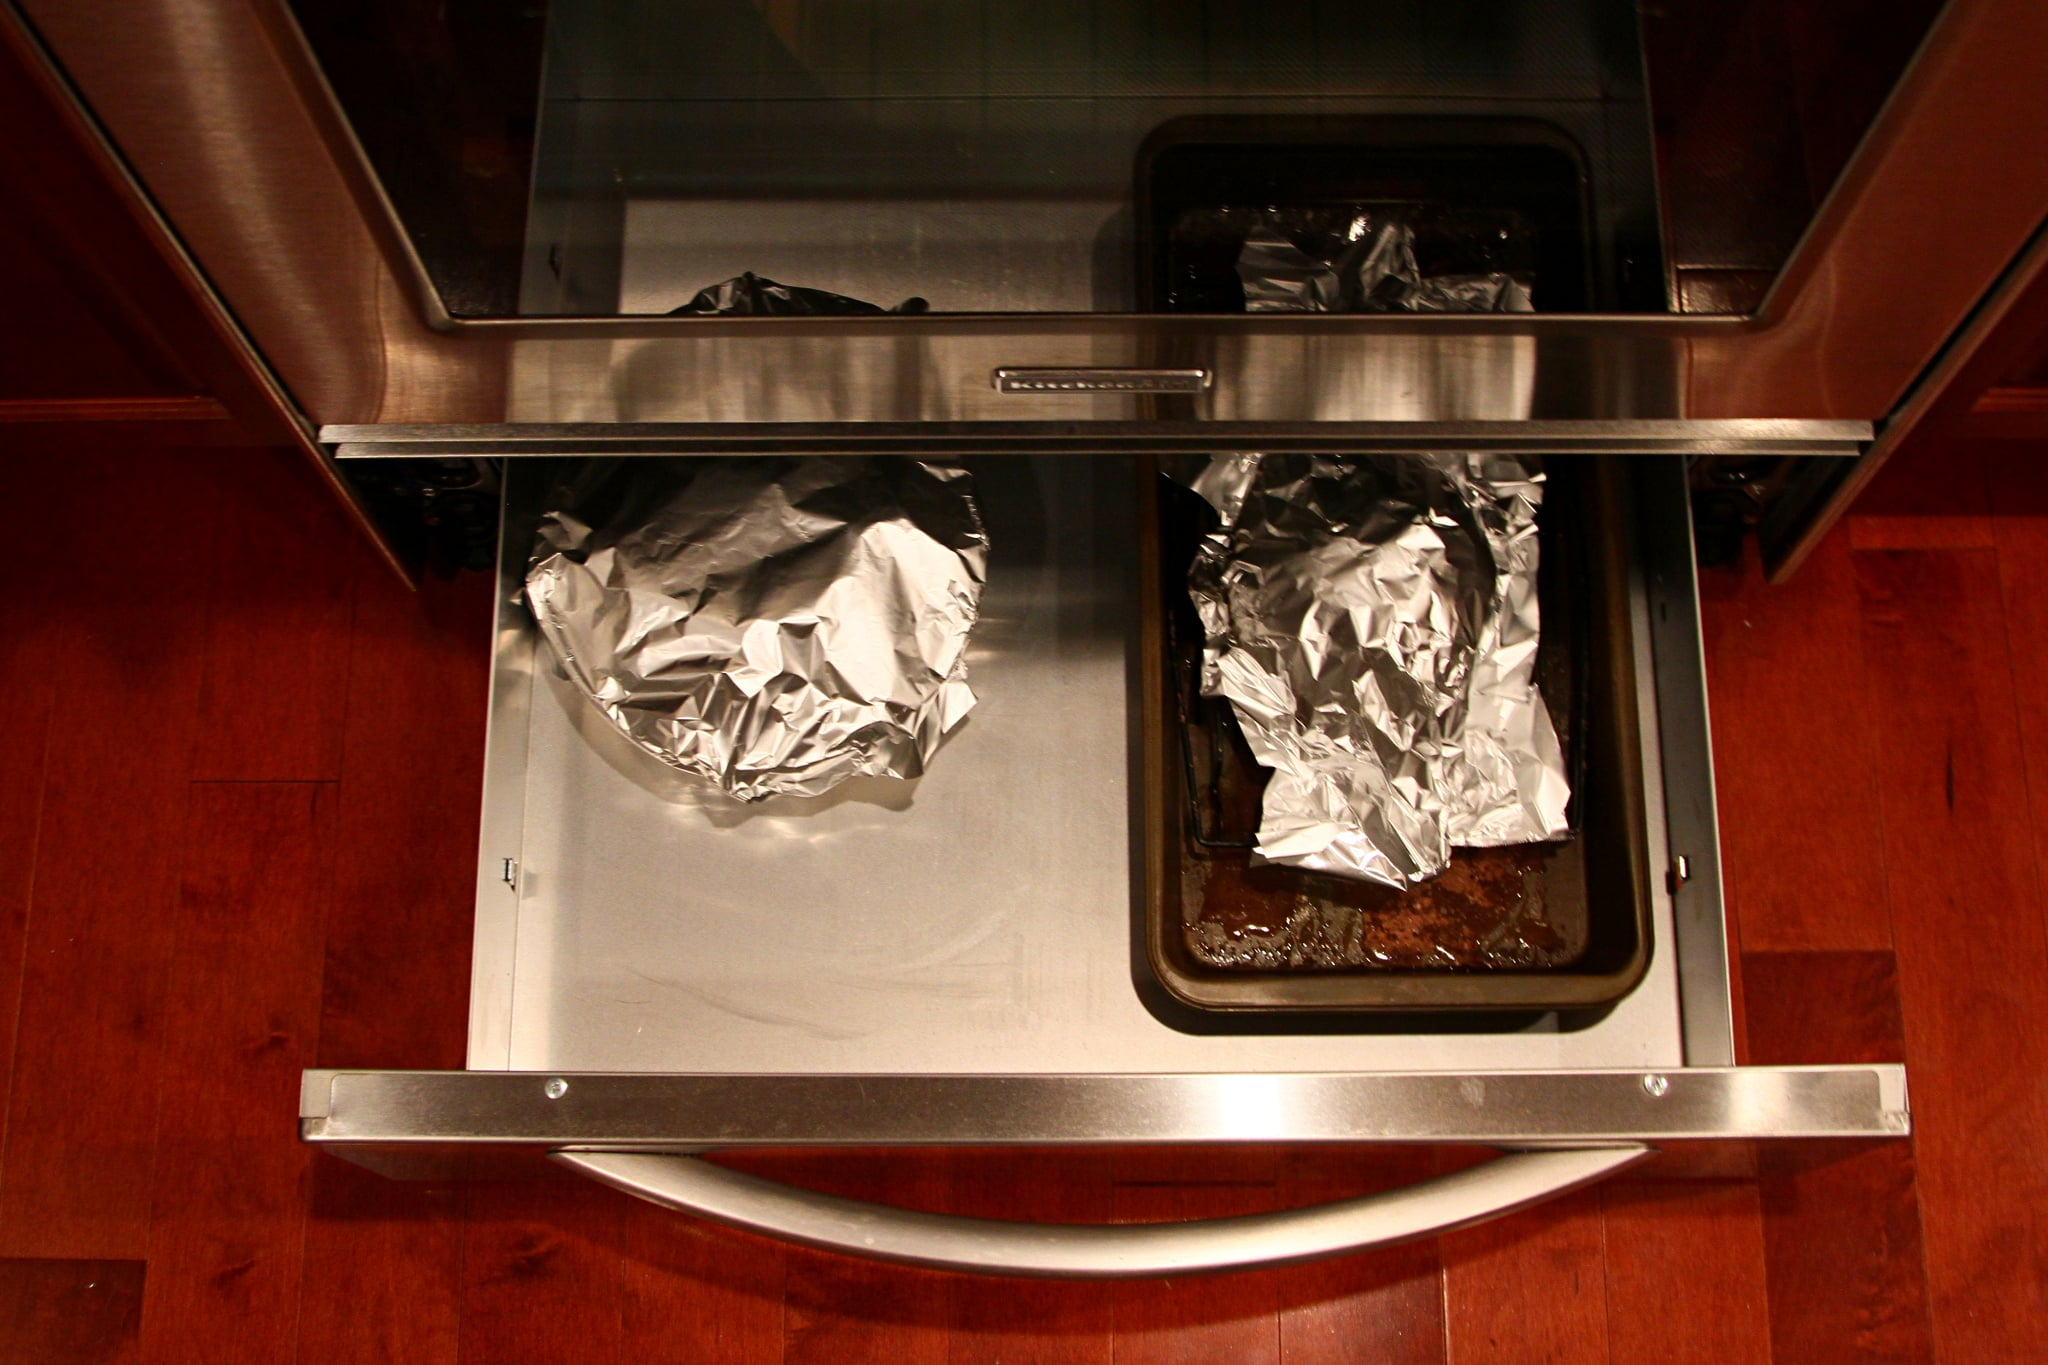 Food Warmer Below Oven ~ What s the purpose of an oven drawer popsugar food